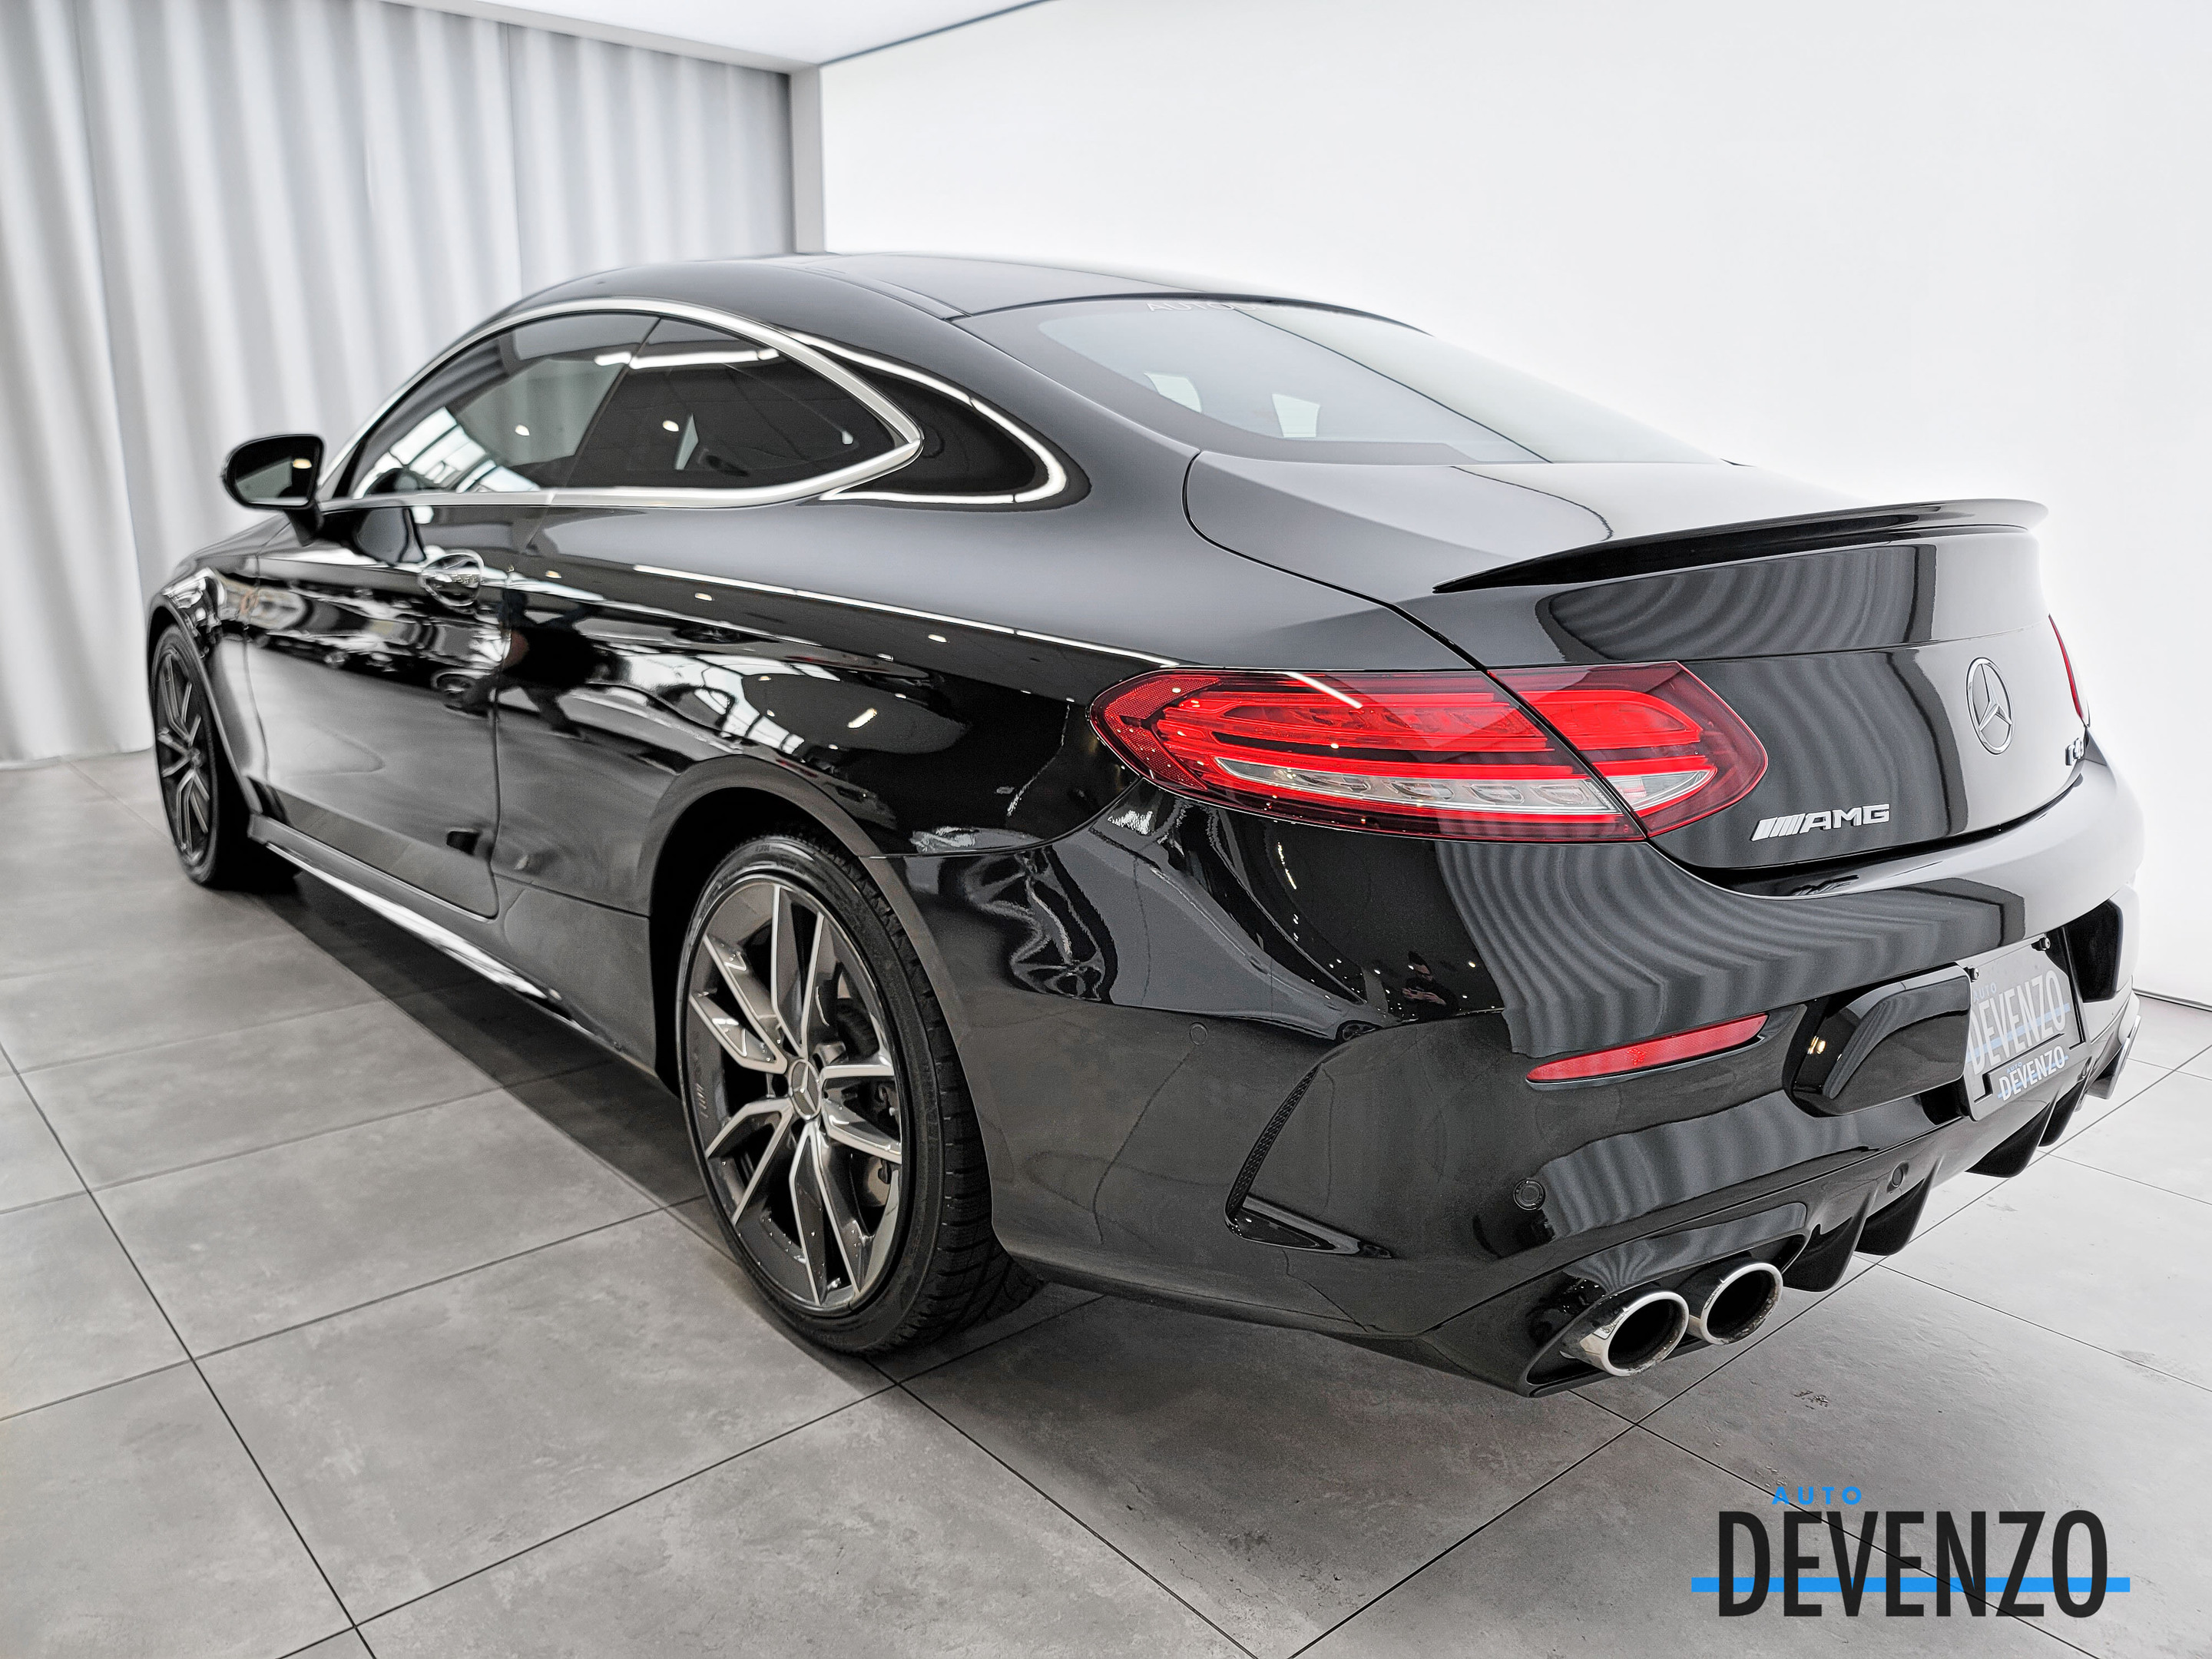 2020 Mercedes-Benz C-Class AMG C43 4MATIC Coupe Intelligent Drive / Night Pk complet